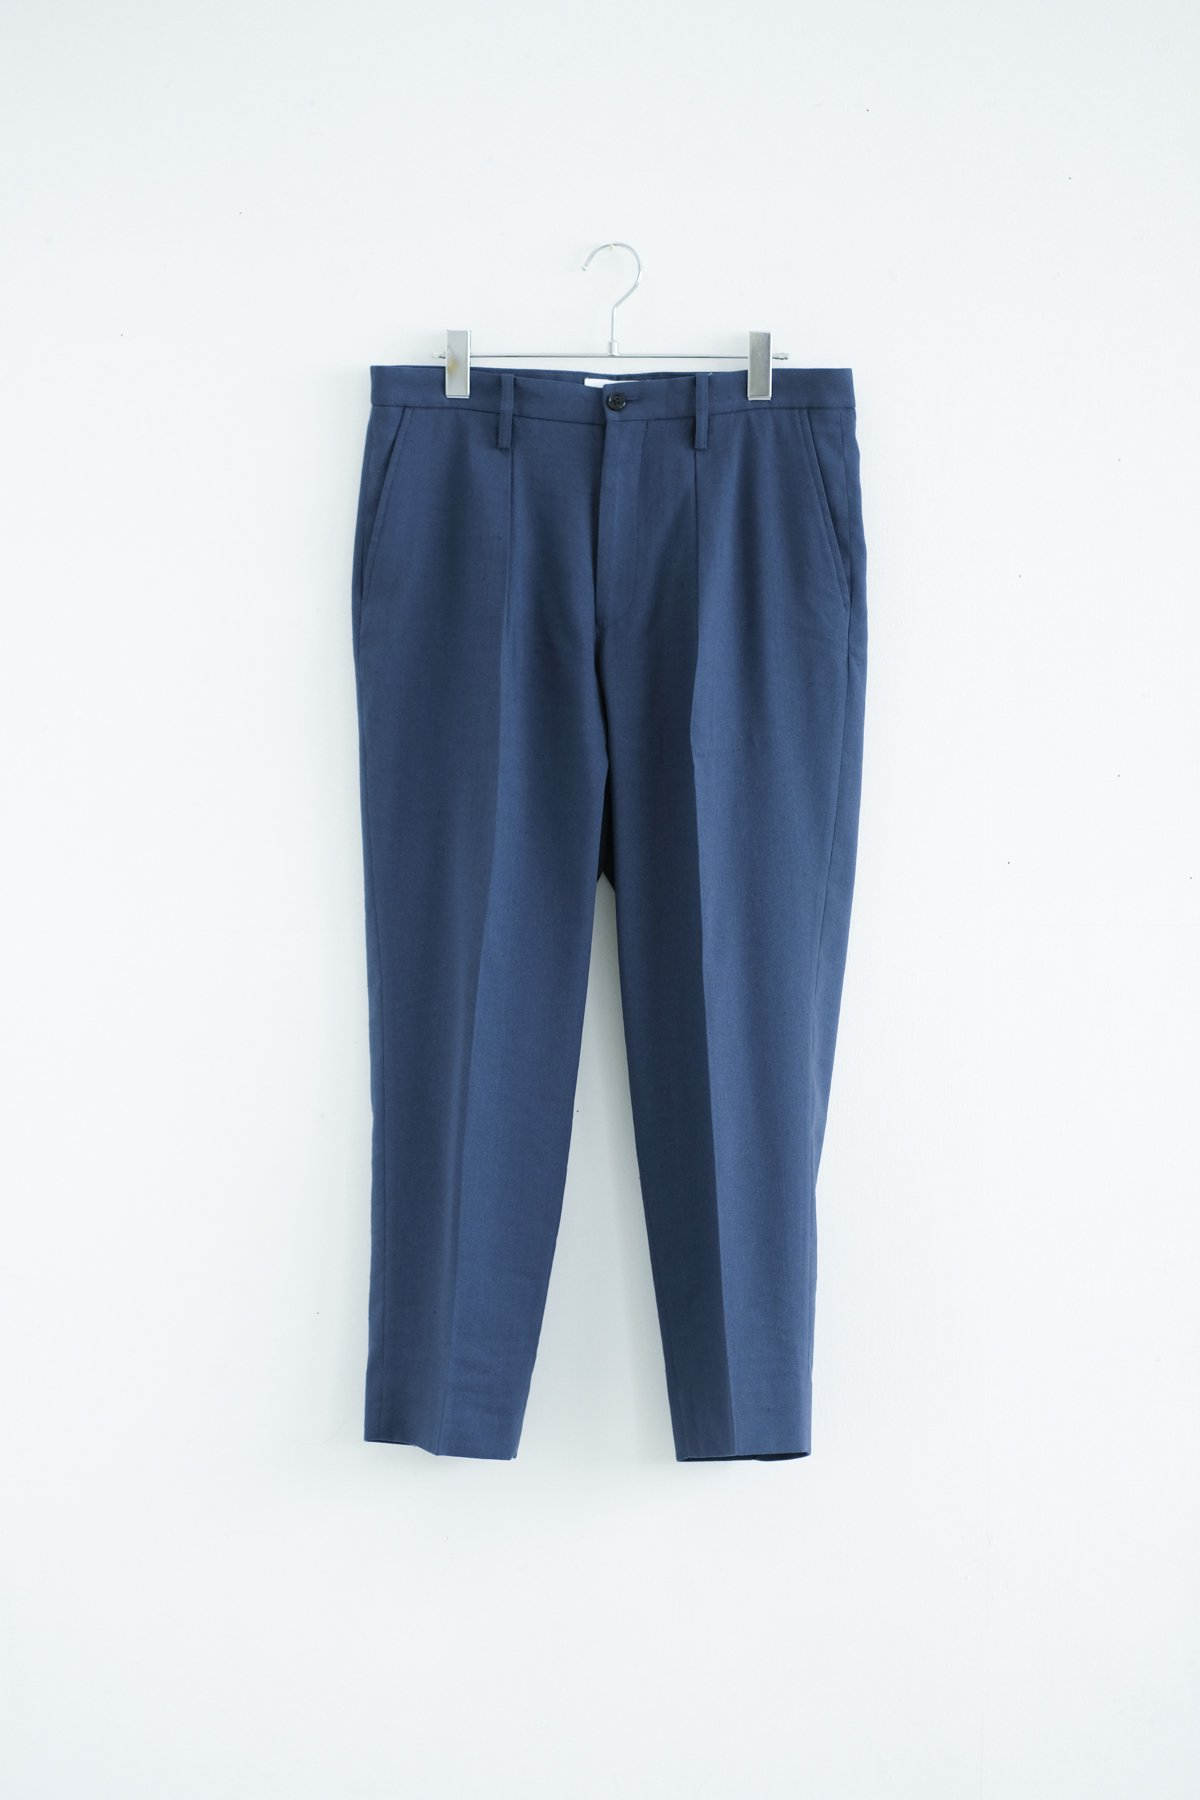 WELLDER / SINGLE FORWARD PLEATED TAPERED TROUSERS